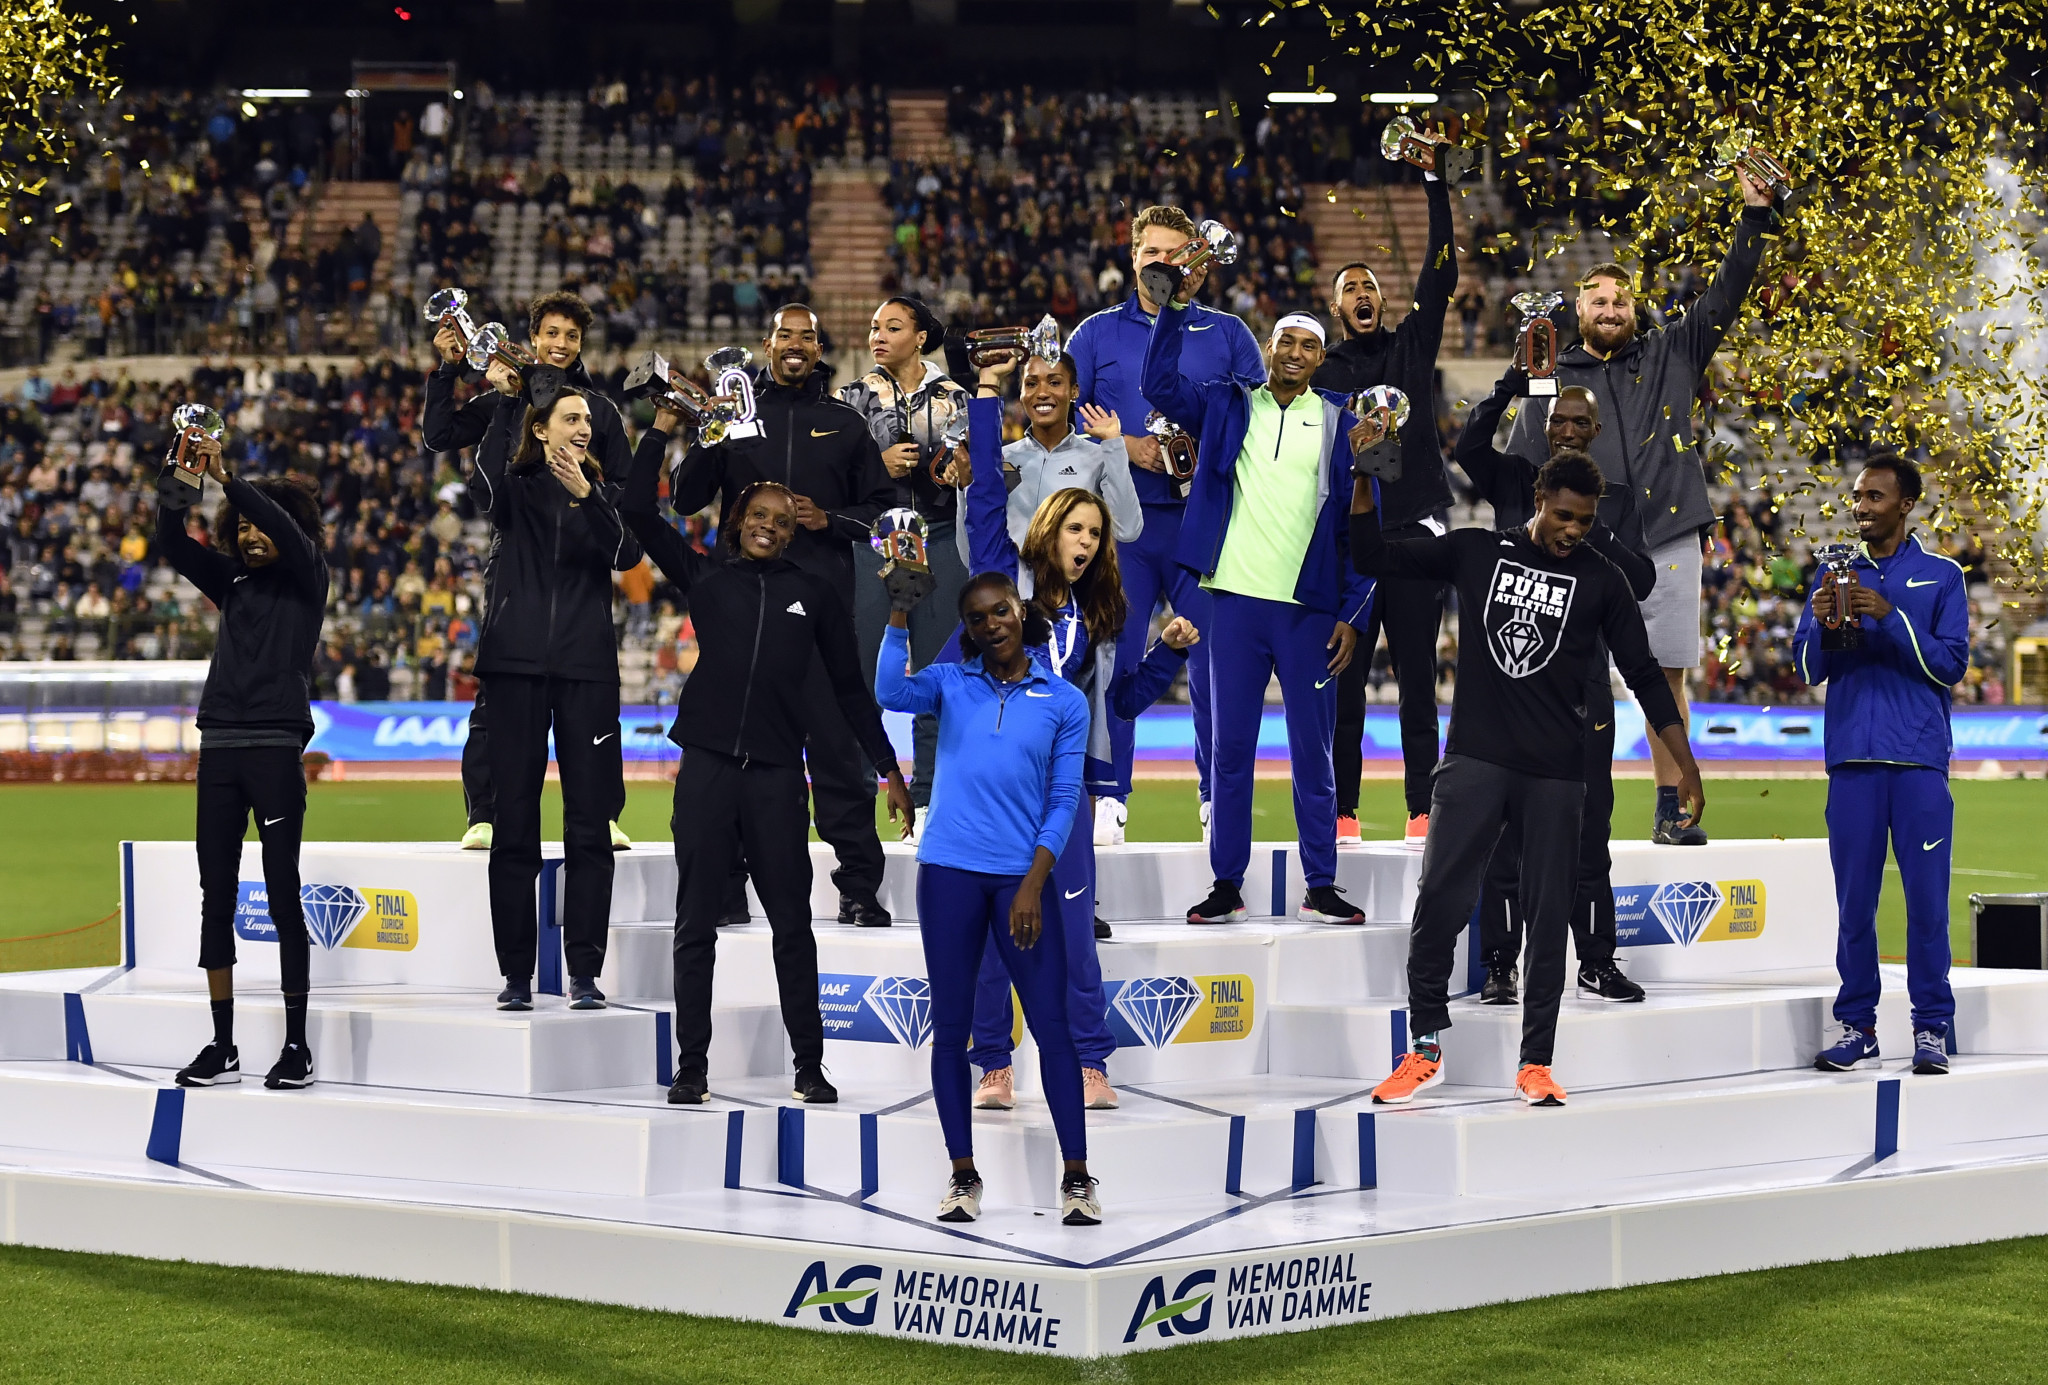 The winners of next year's IAAF Diamond League are set to be crowned in Zurich ©Getty Images